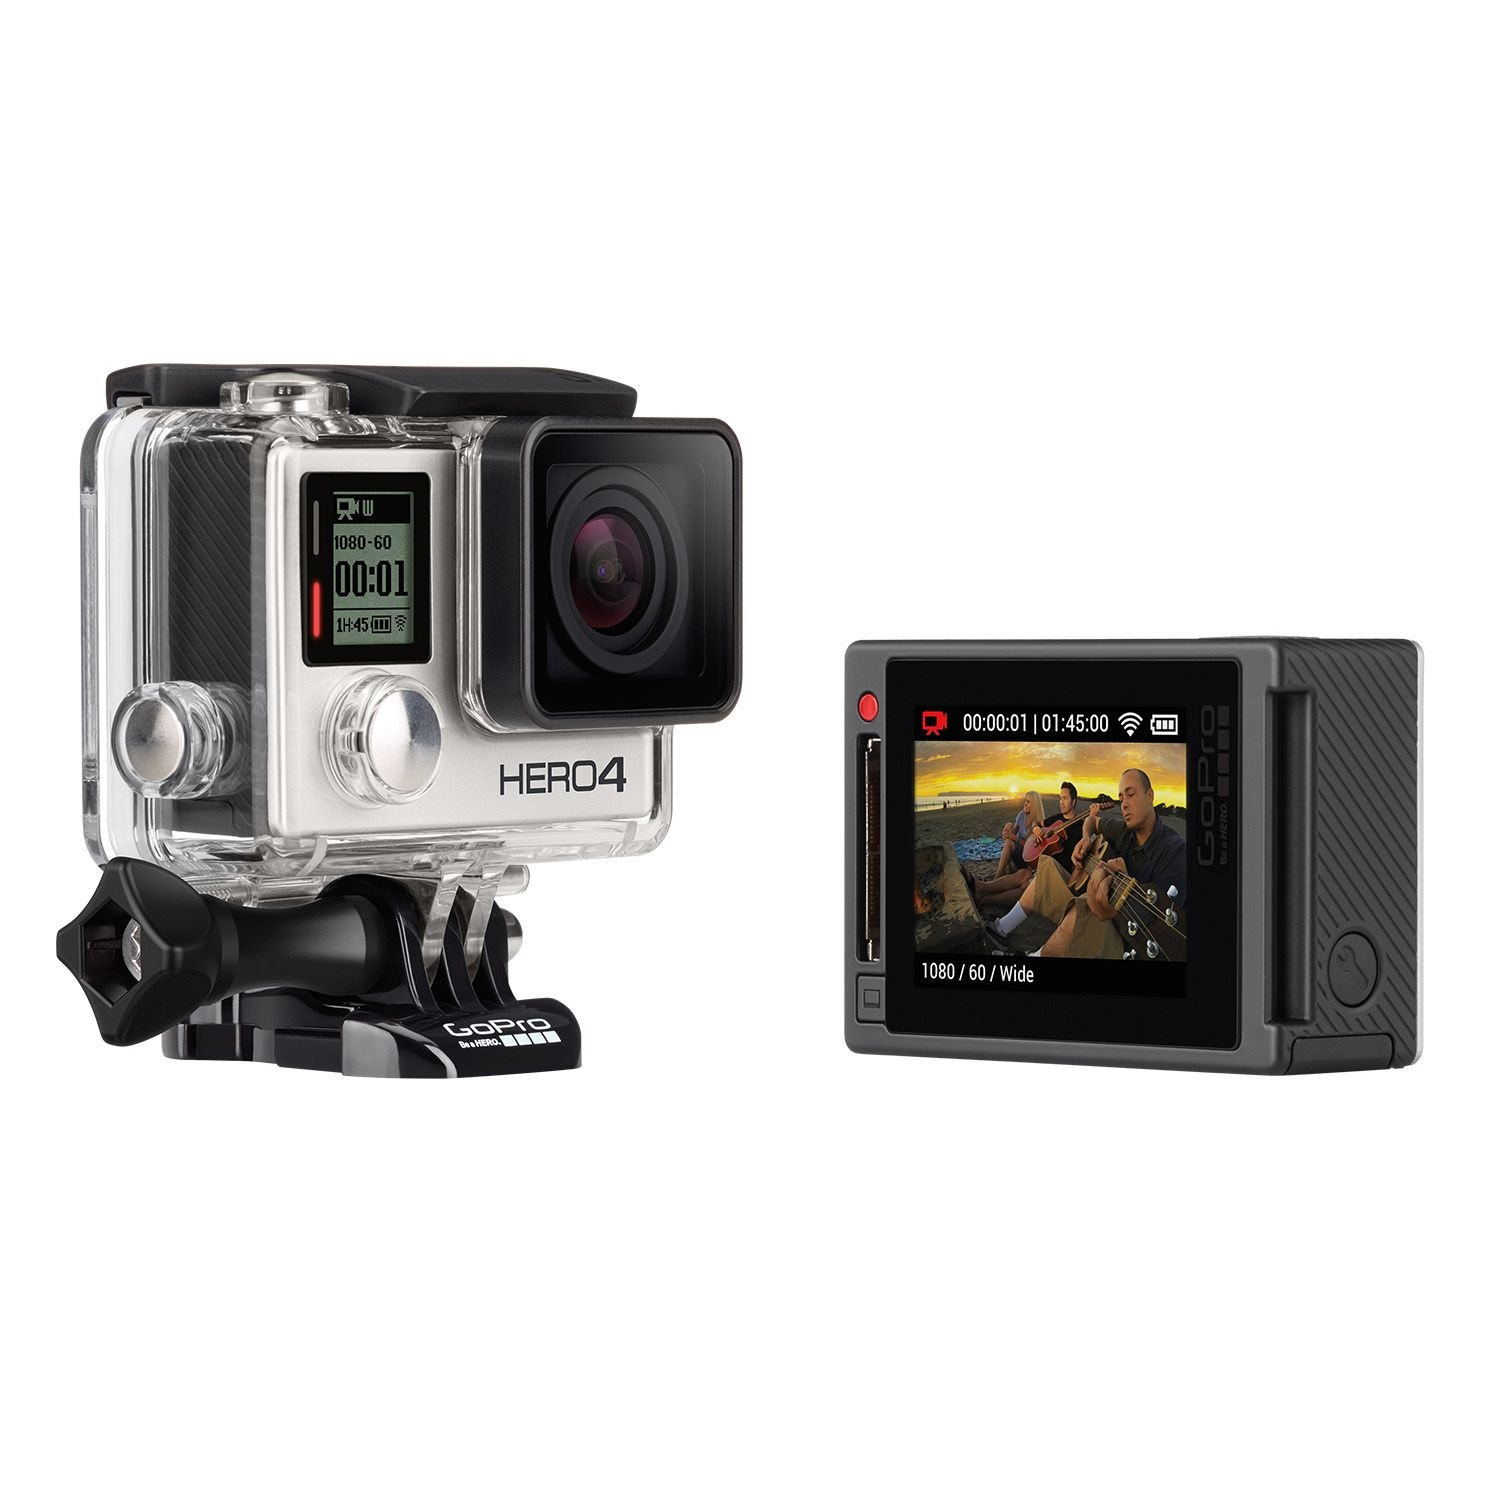 amazoncom gopro hero 4 silver edition 12mp waterproof sports action camera bundle with 2 batteries camera photo